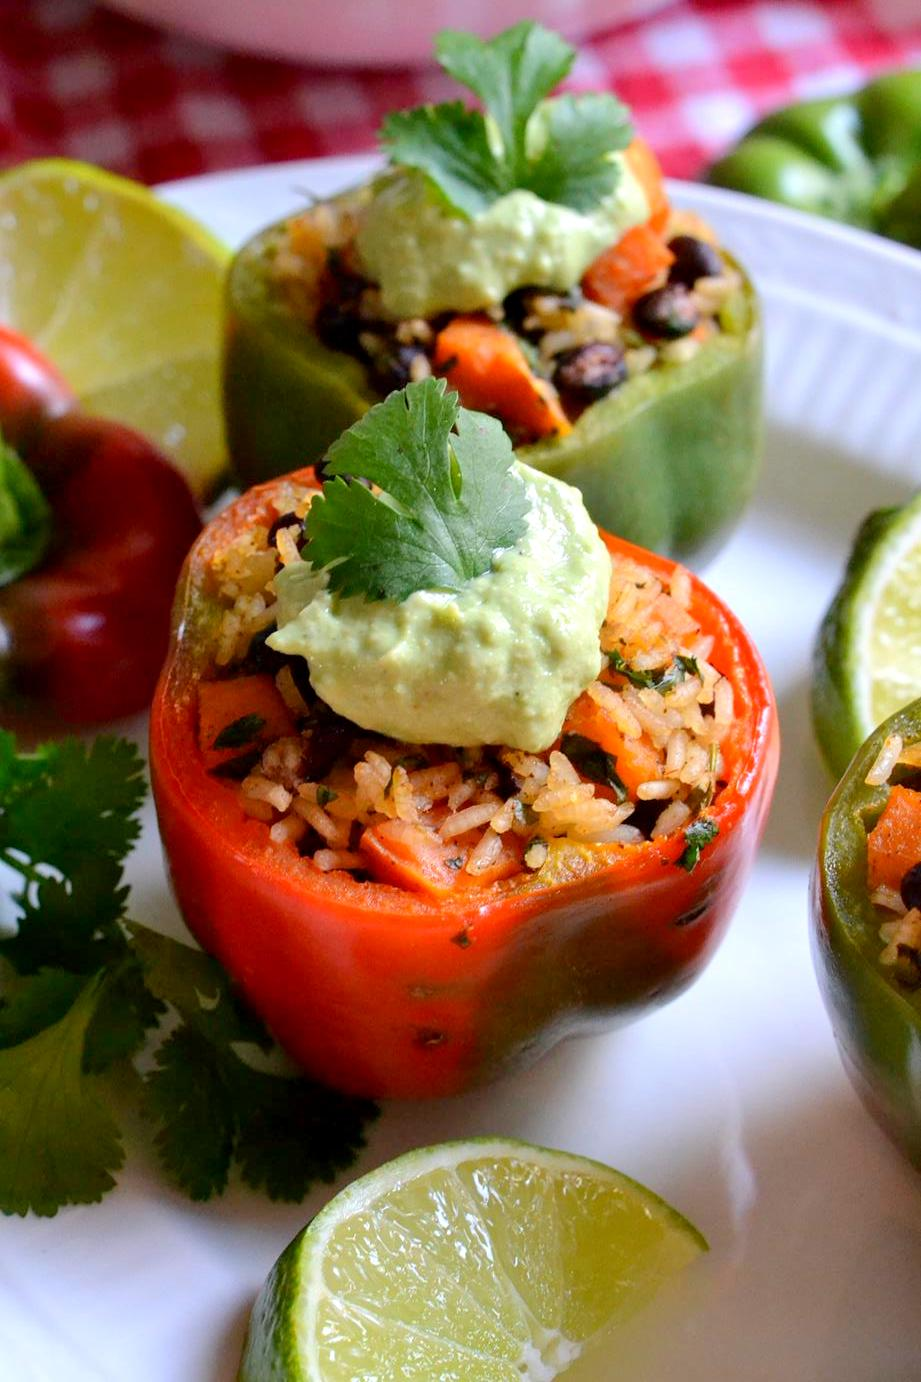 Sweet Potato and Black Bean Stuffed Peppers with Avocado Yogurt Sauce